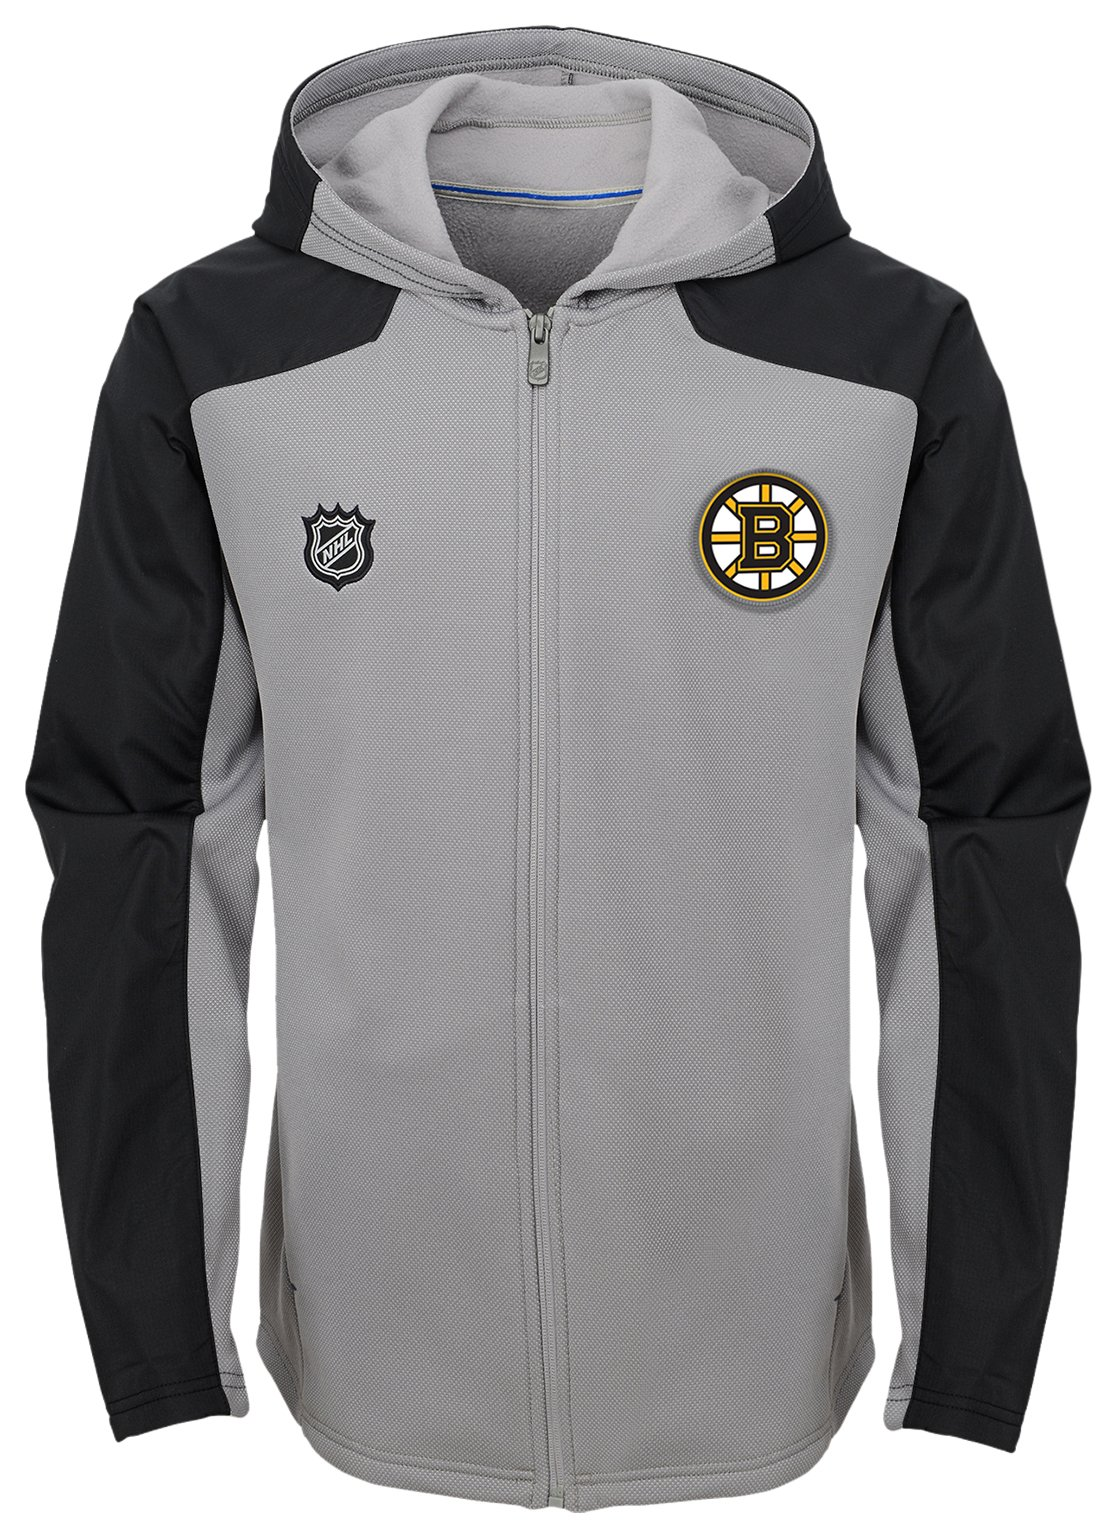 Outerstuff NHL Boston Bruins Kids & Youth Boys Delta Full Zip Jacket, Small(4), Magenta Pique Heather